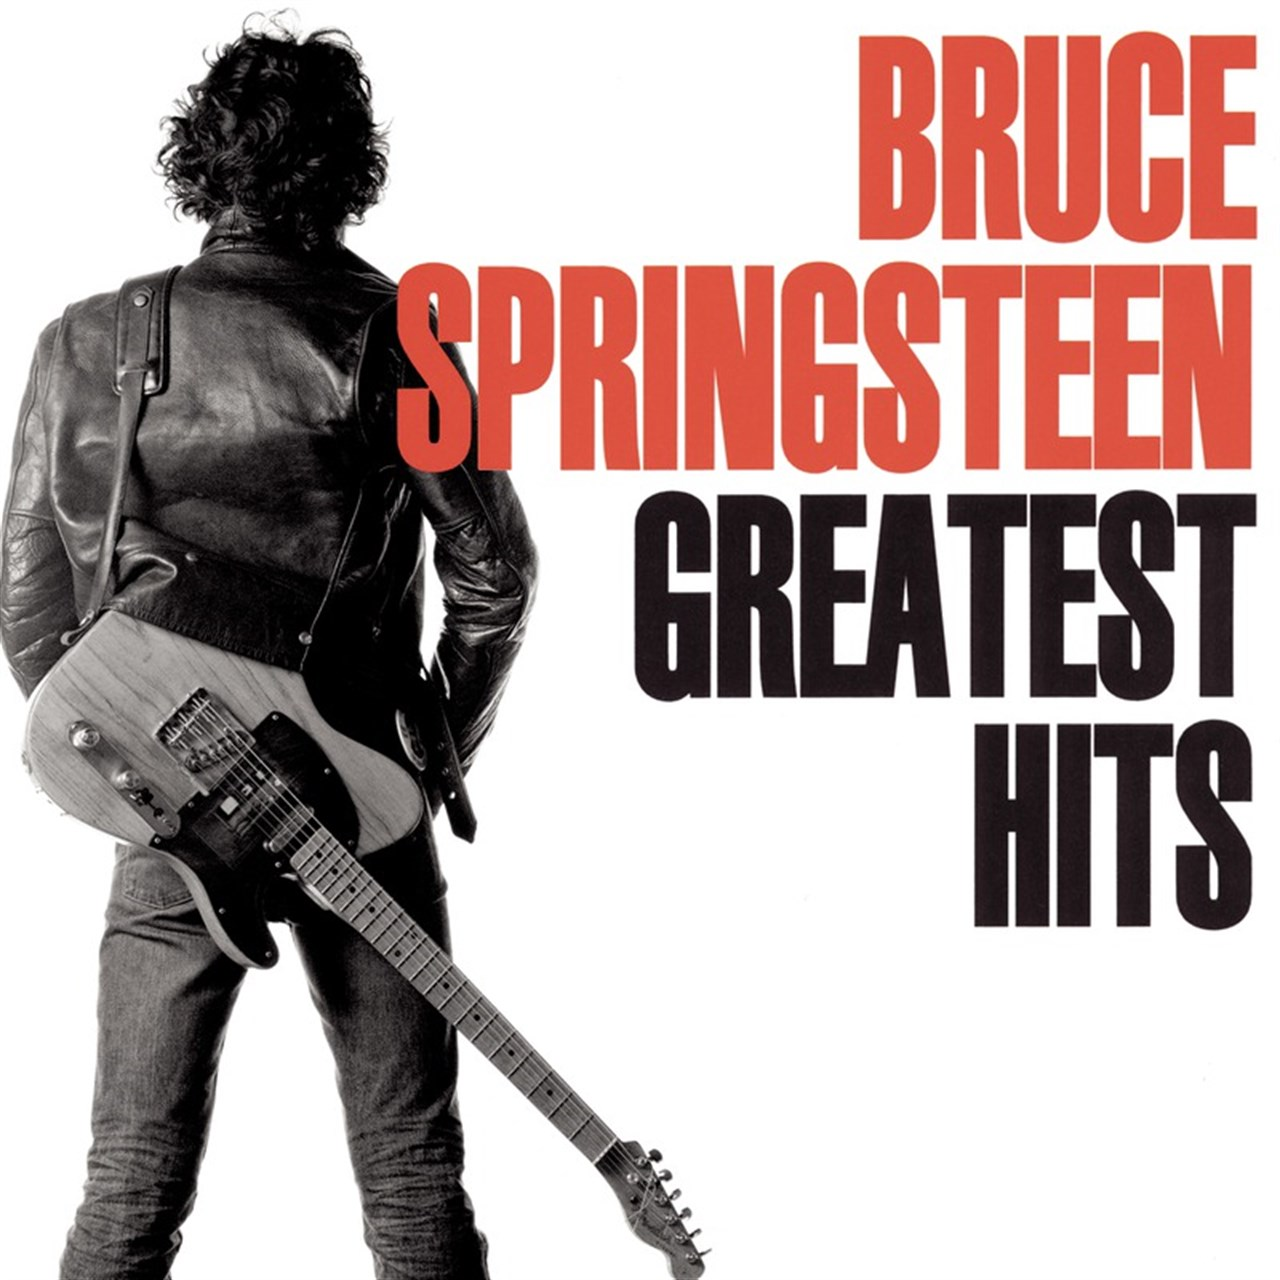 Фото - Bruce Springsteen Bruce Springsteen - Greatest Hits (2 LP) bruce springsteen bruce springsteen working on a dream 2 lp